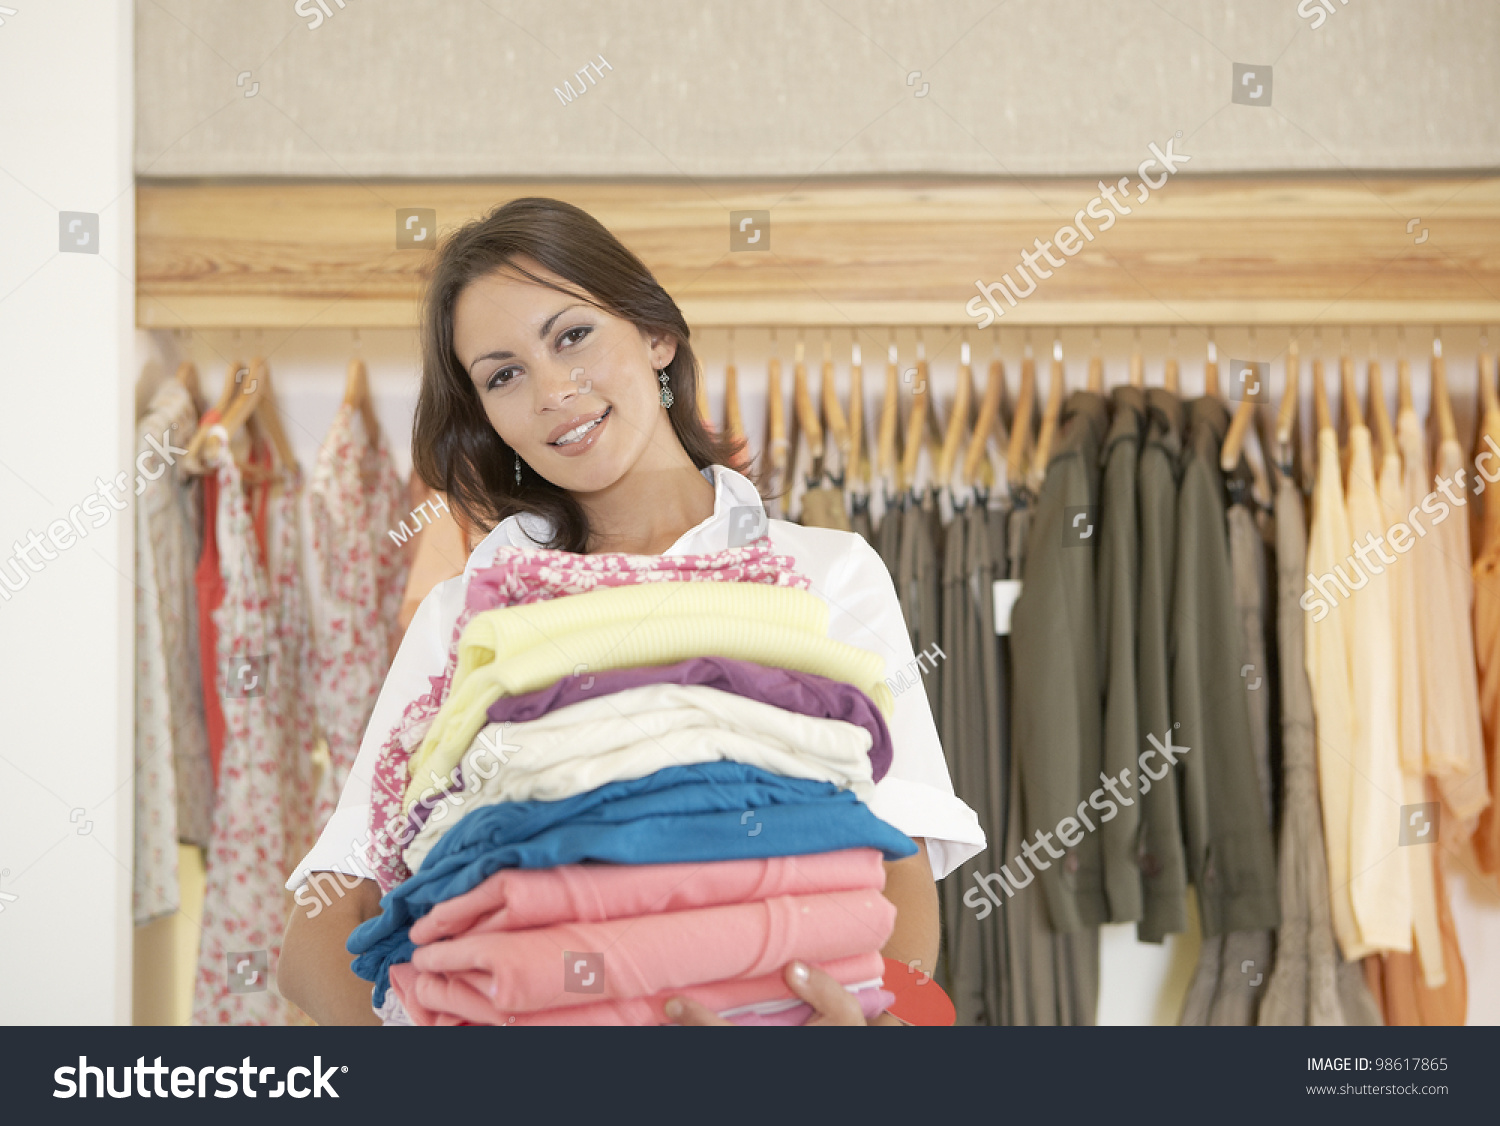 shop assistant holding pile clothes fashion stock photo  shop assistant holding a pile of clothes in a fashion store